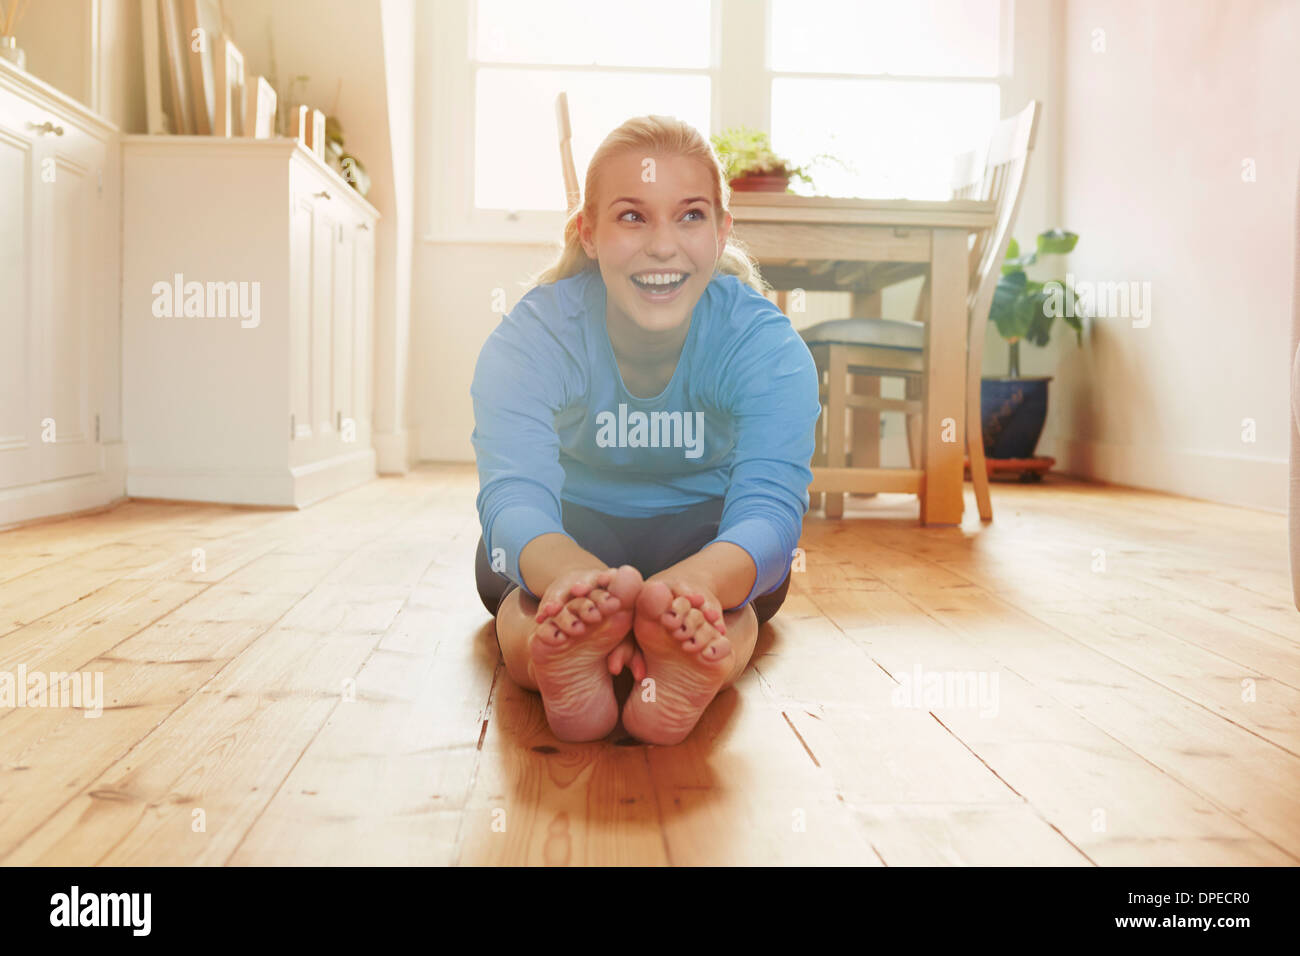 Young woman sitting on floor leaning forwards touching toes - Stock Image